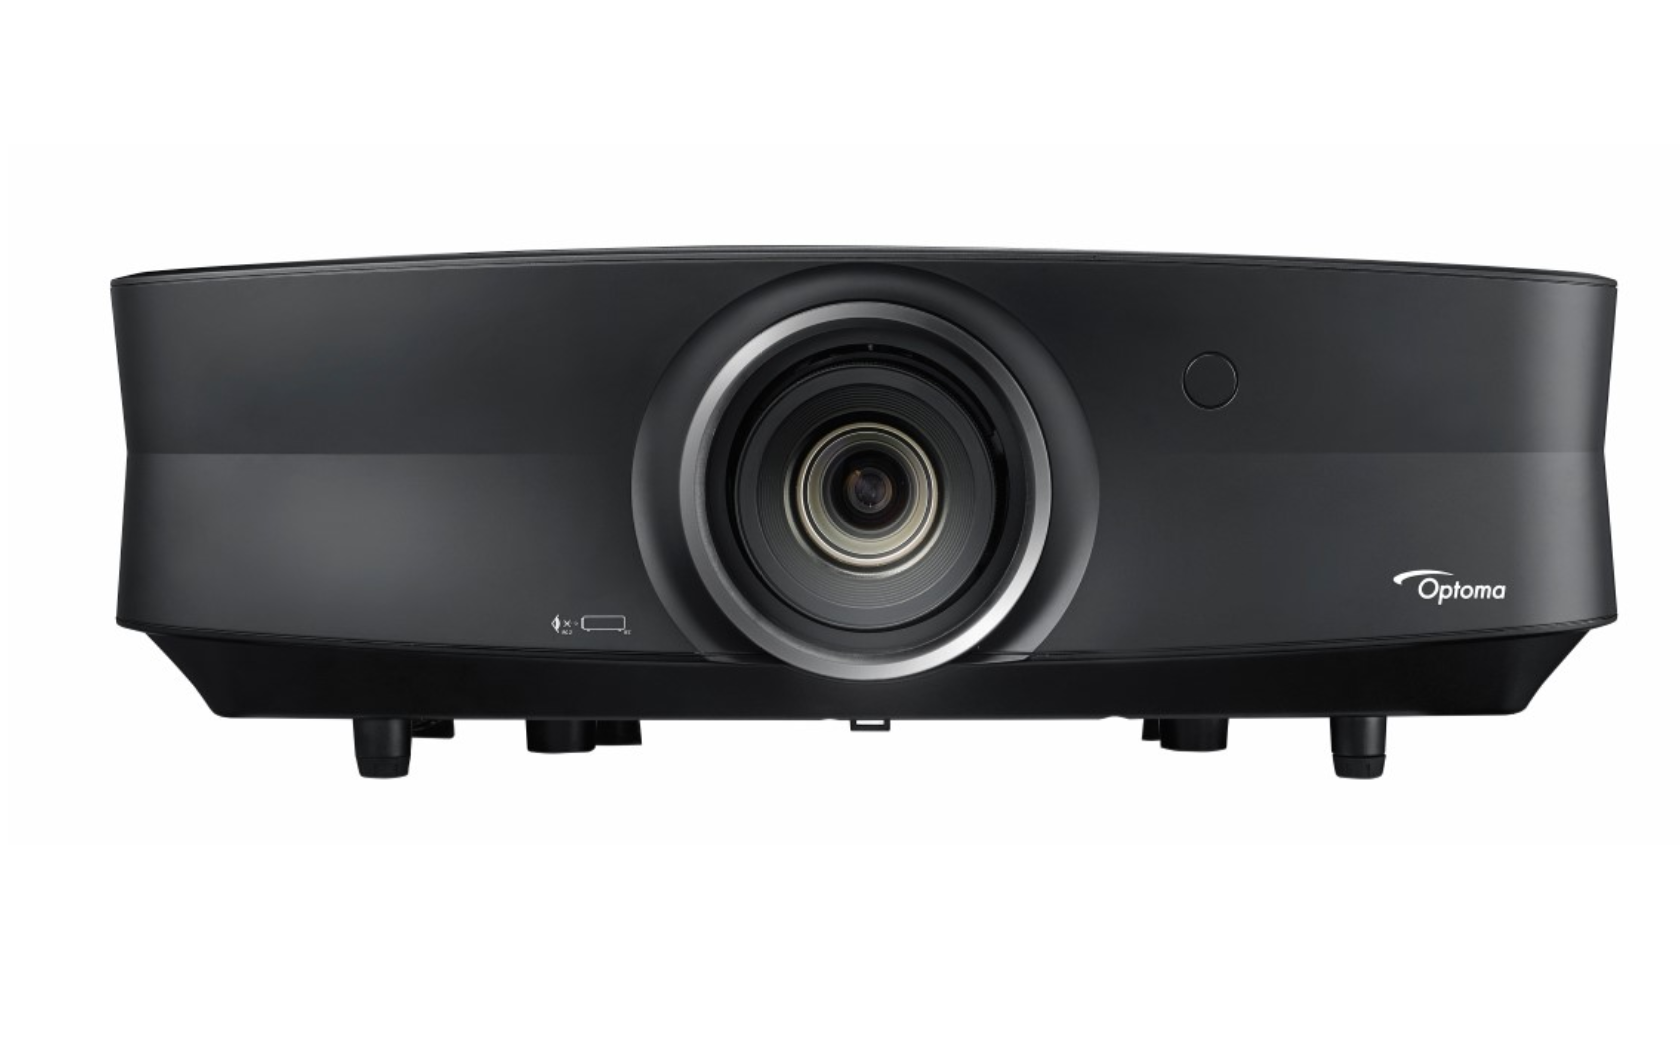 Optoma UHZ65 3000lm 4K Laser Home Theater Projector